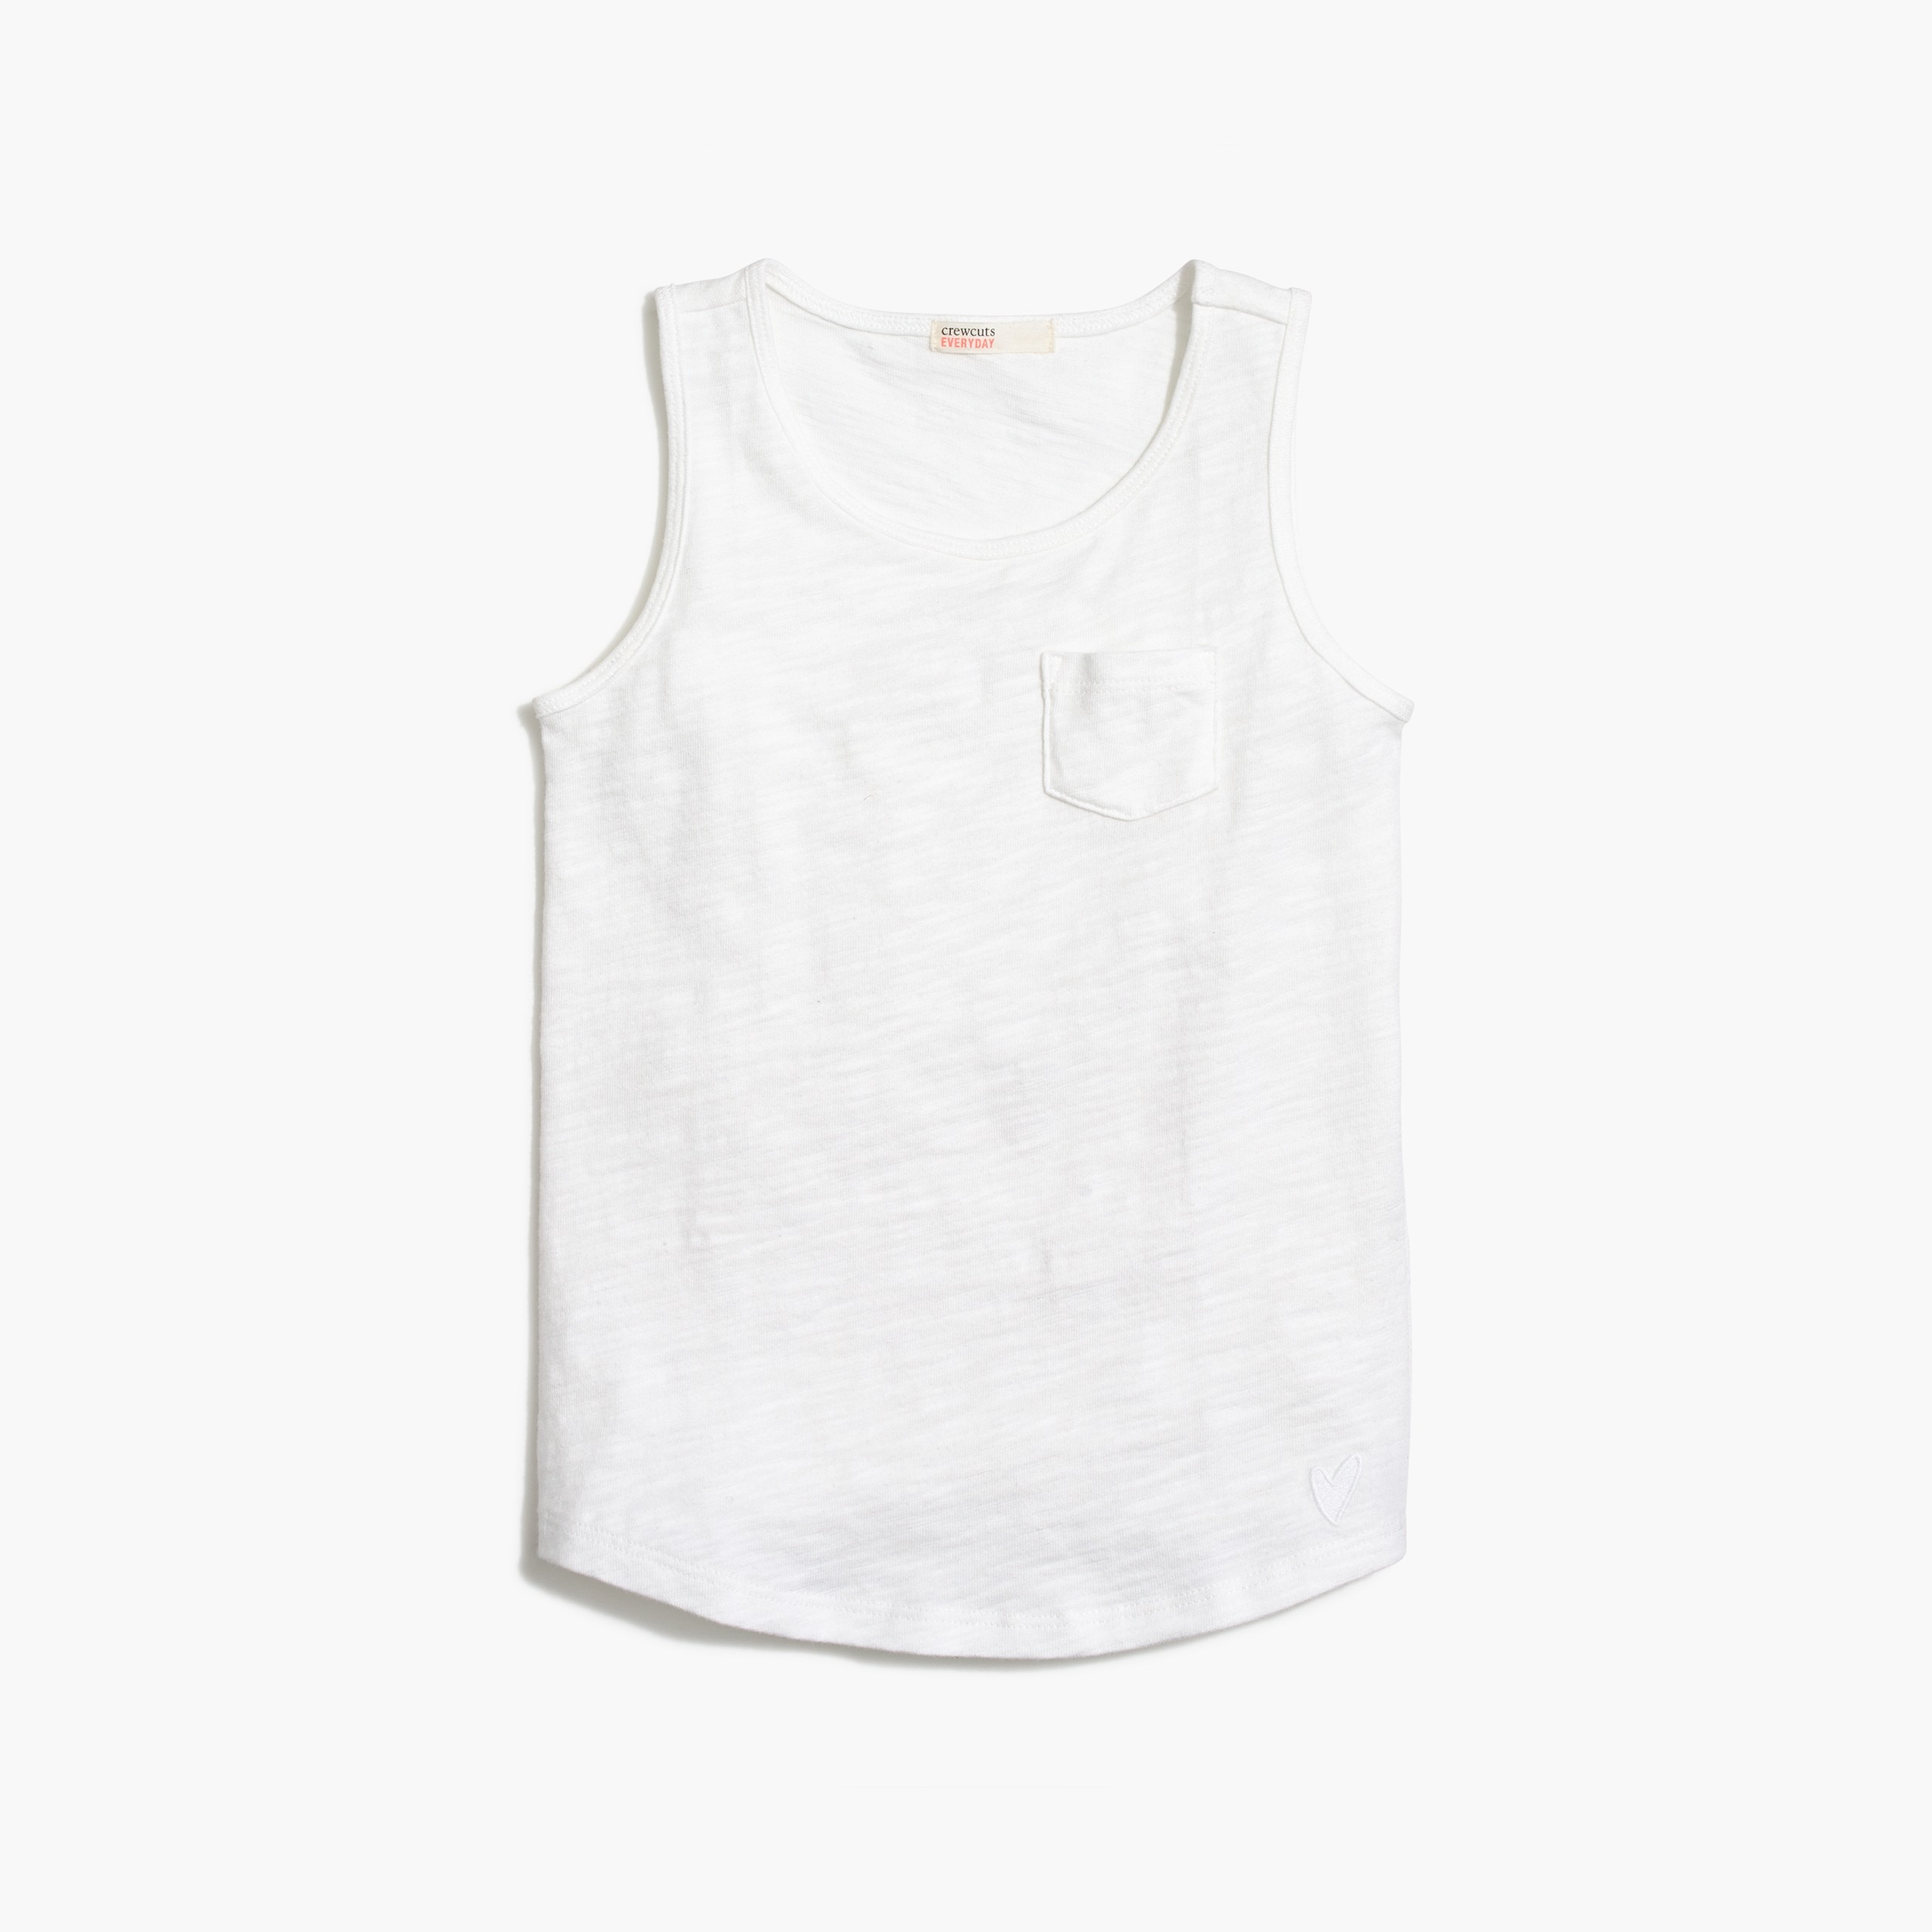 factory girls Girls' pocket tank top